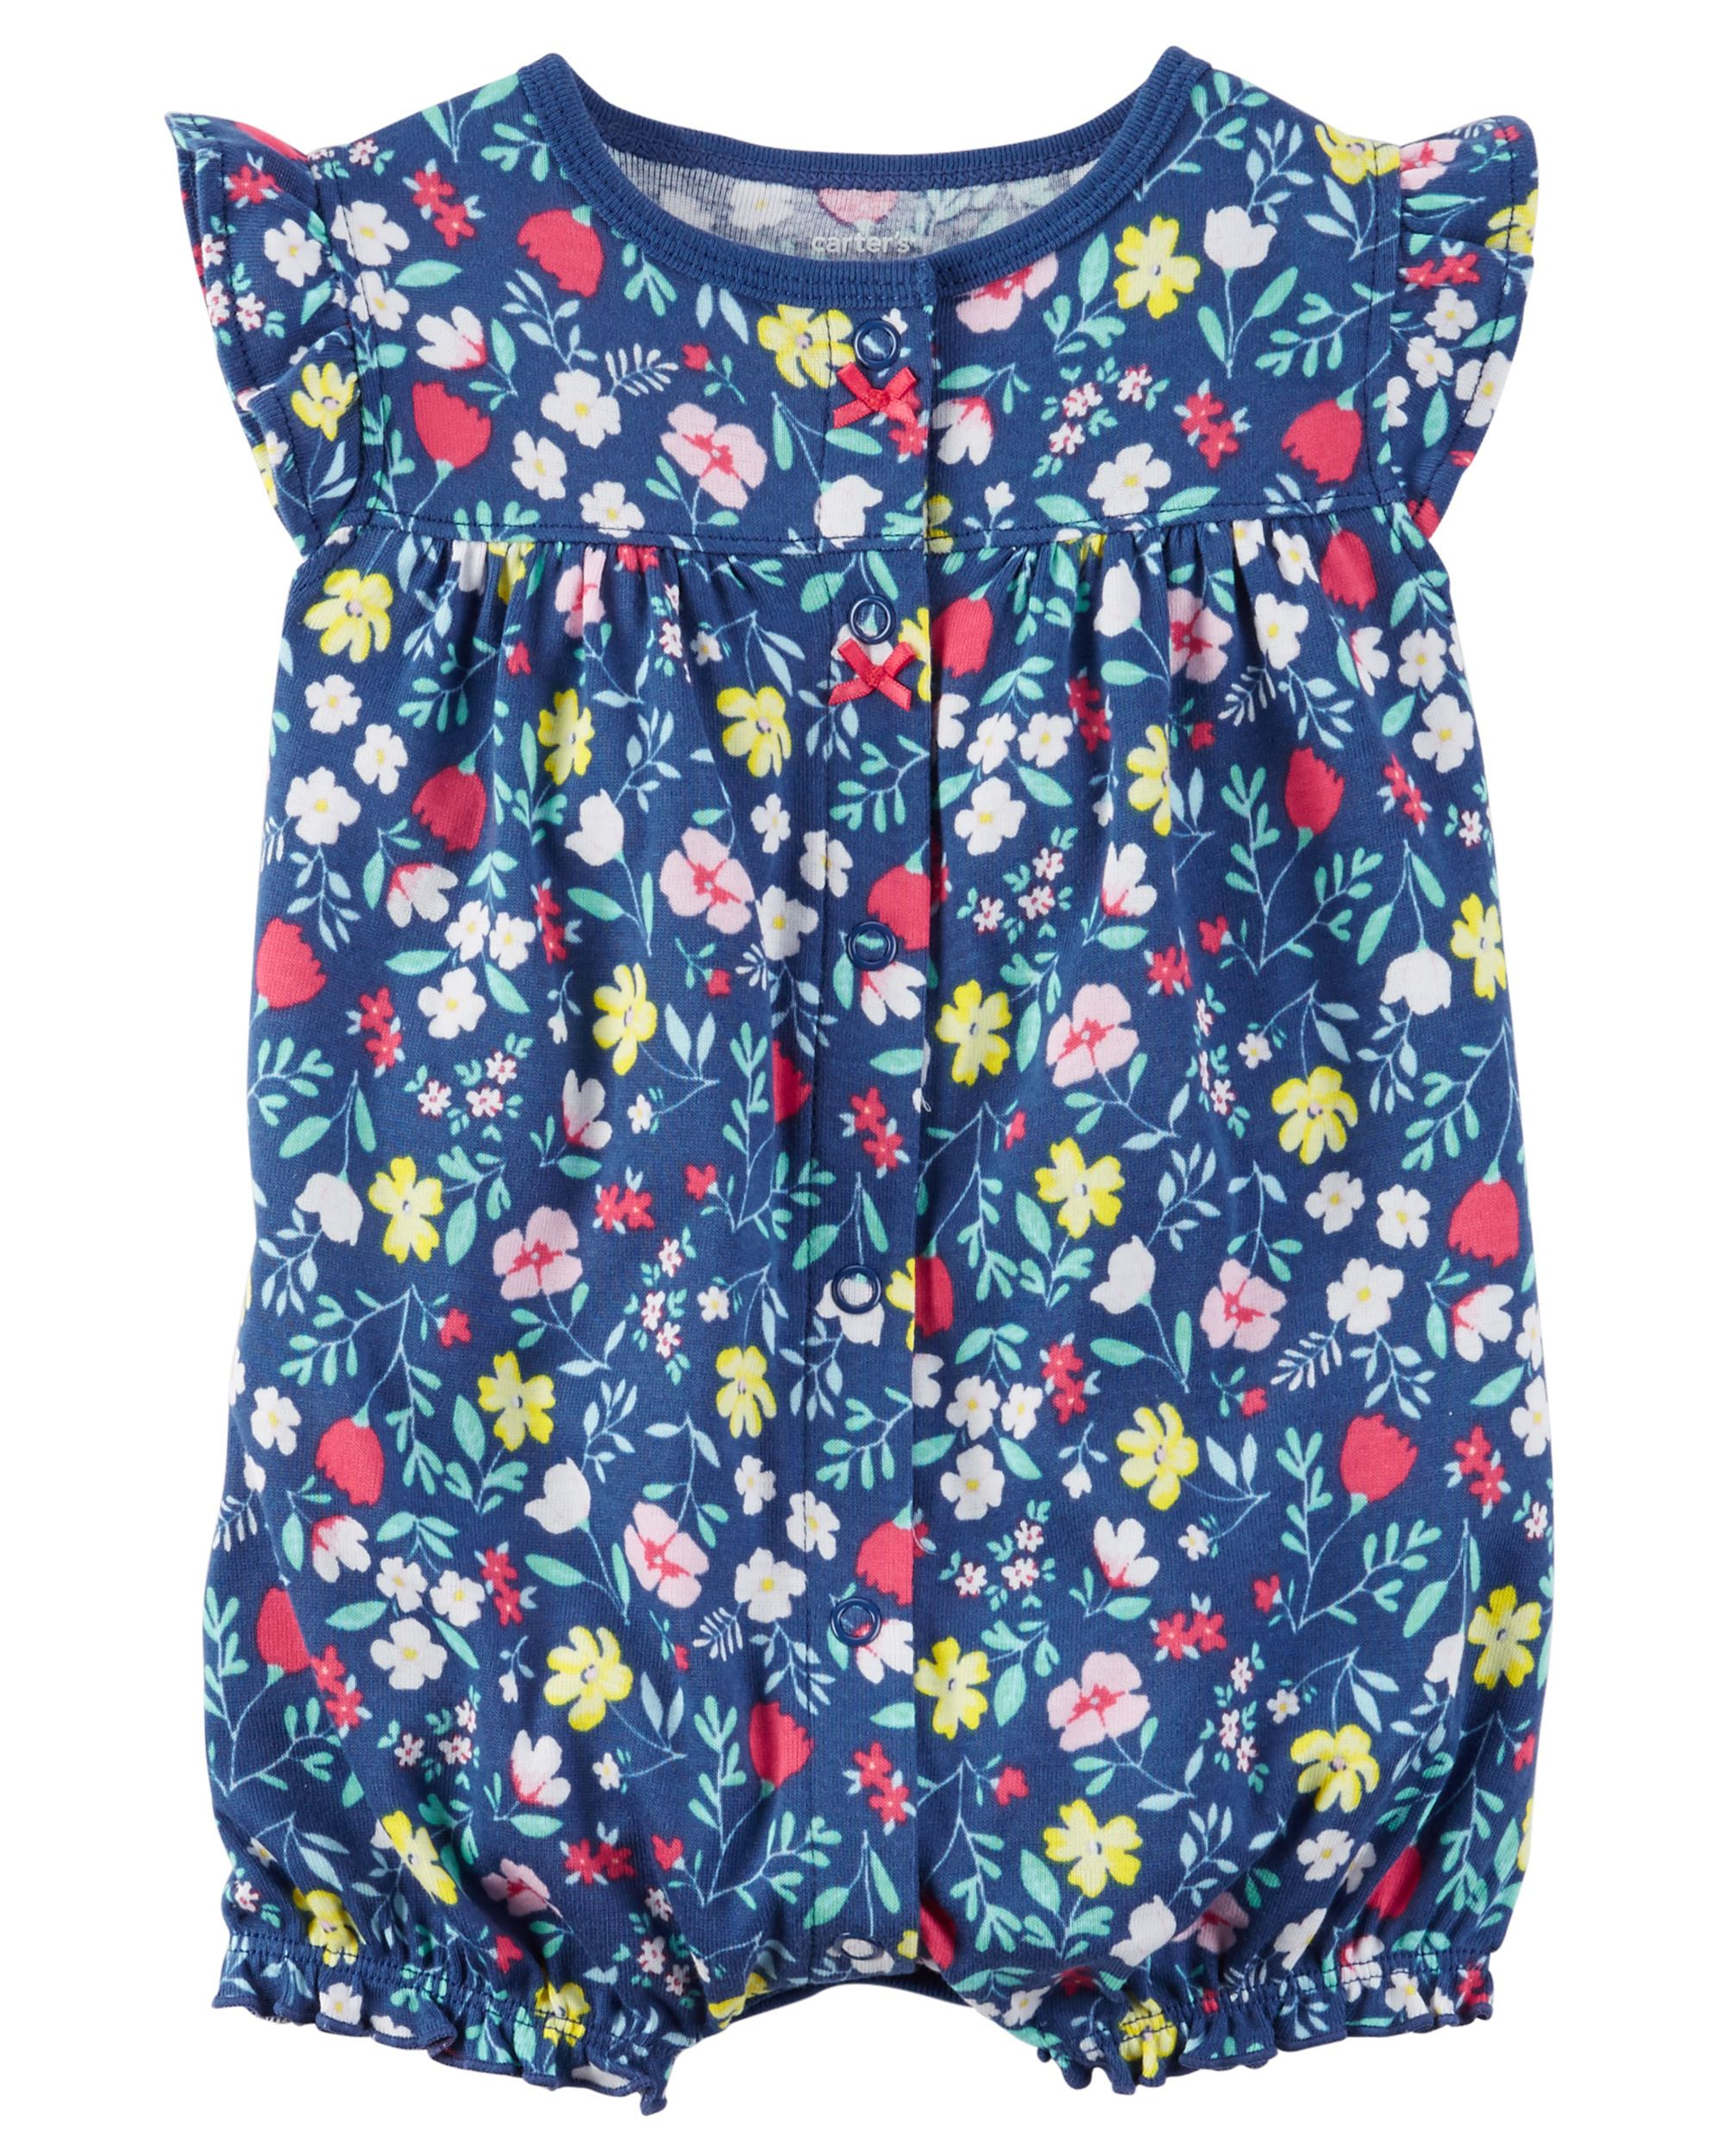 f6e3f8f83 Snap-Up Cotton Romper | Callie Jane | Baby girl romper, Carters baby ...